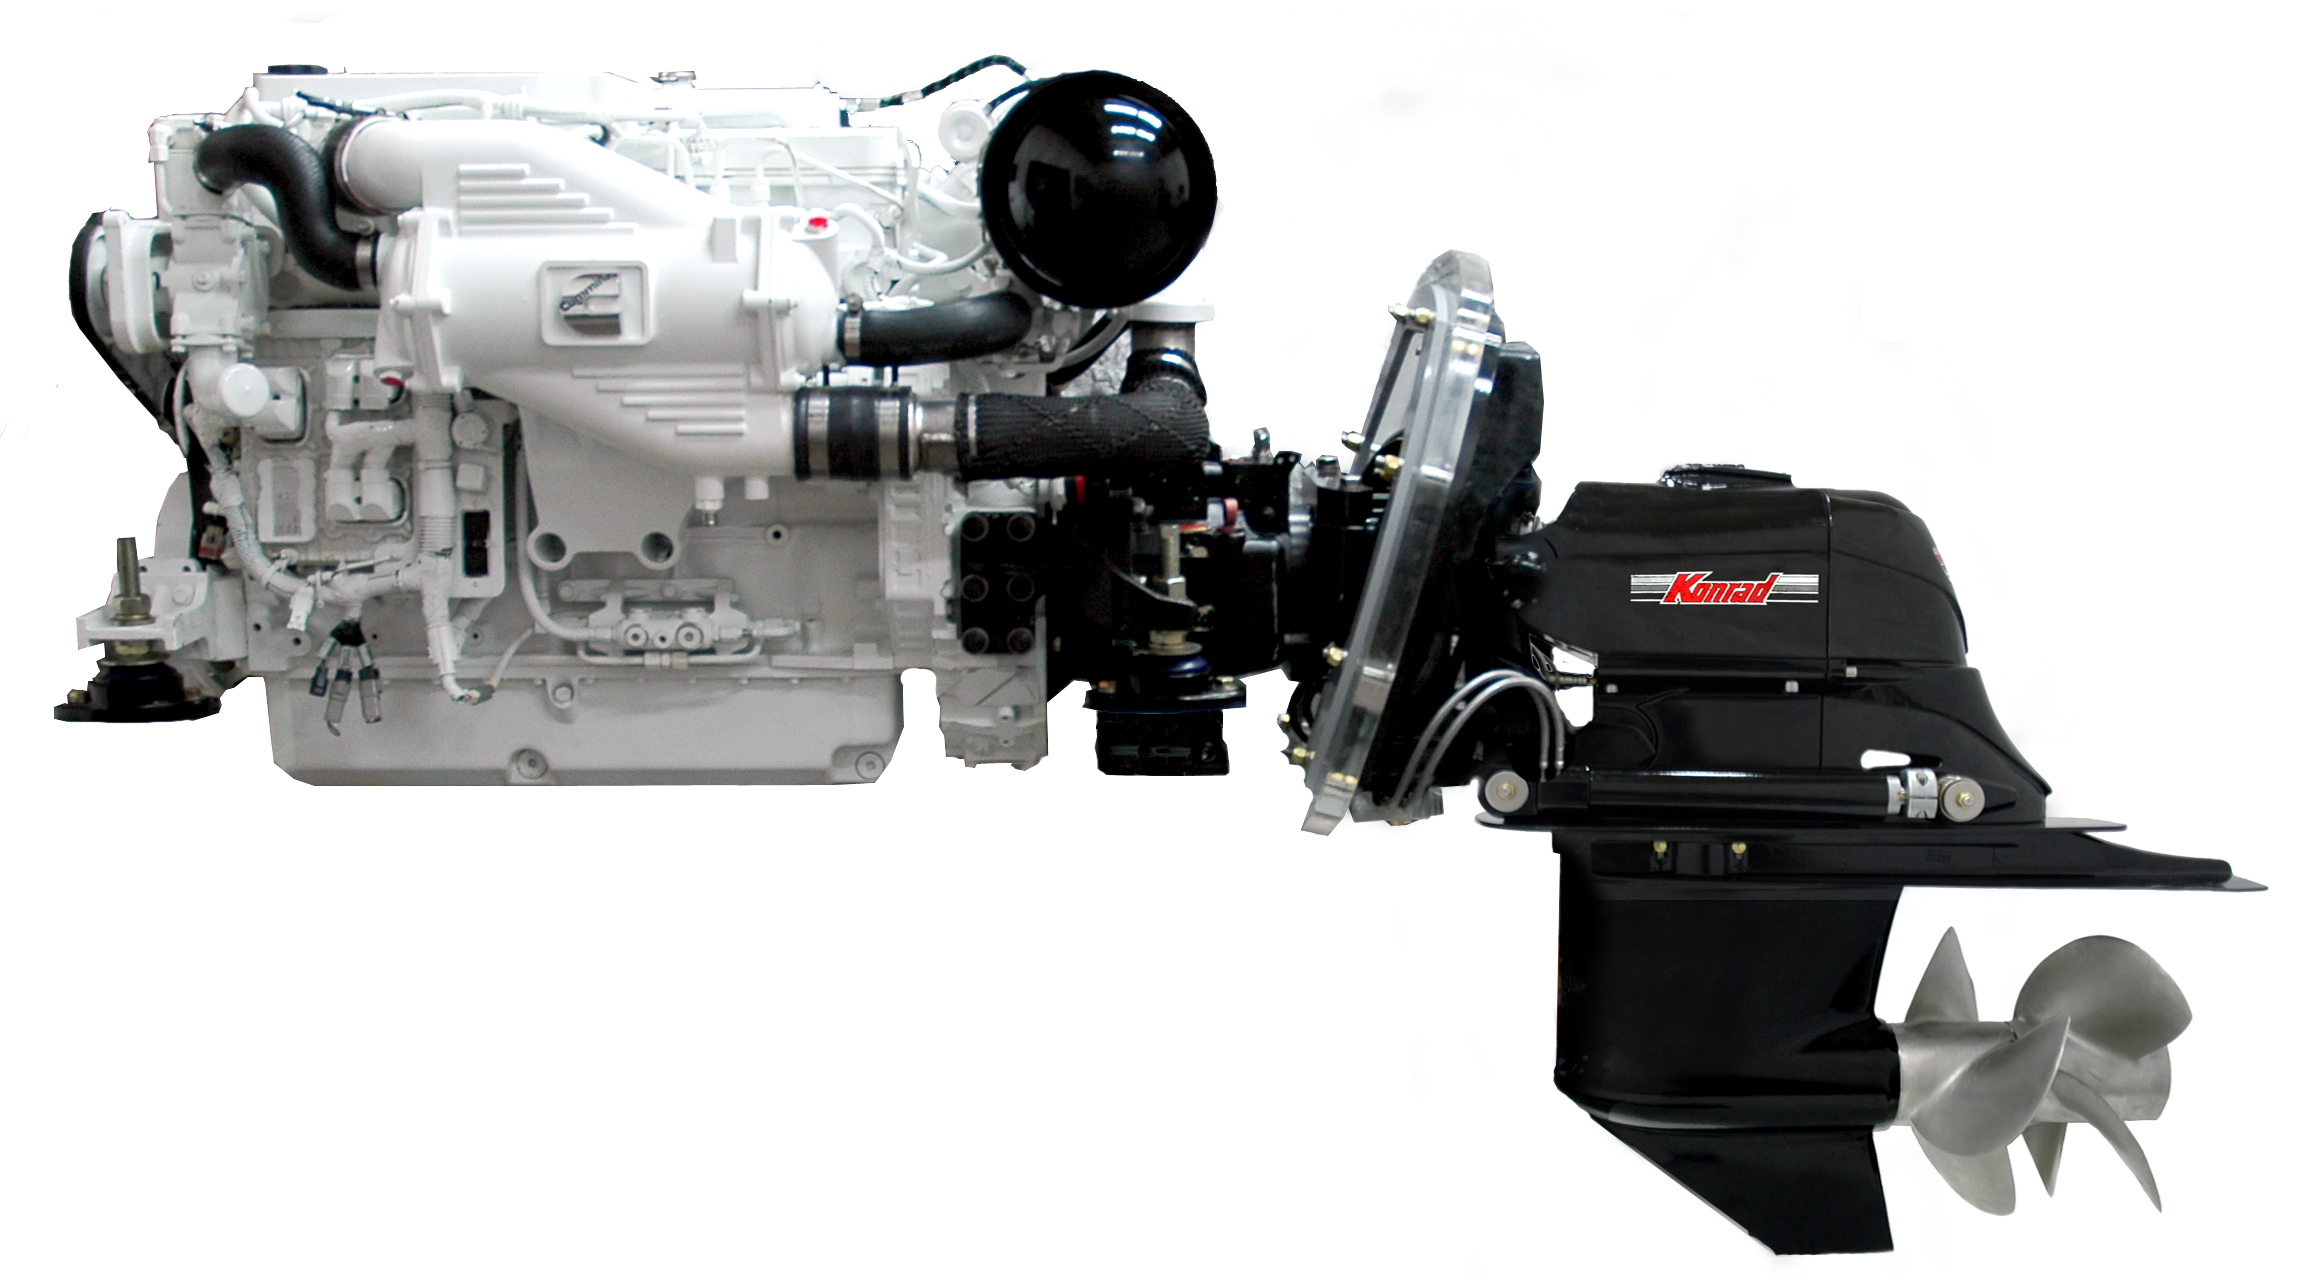 A Konrad sterndrive attached to a Cummins diesel engine. Rugged and built for heavy duty use, it is a superb choice for the new Adventure Series ocean motorboat.